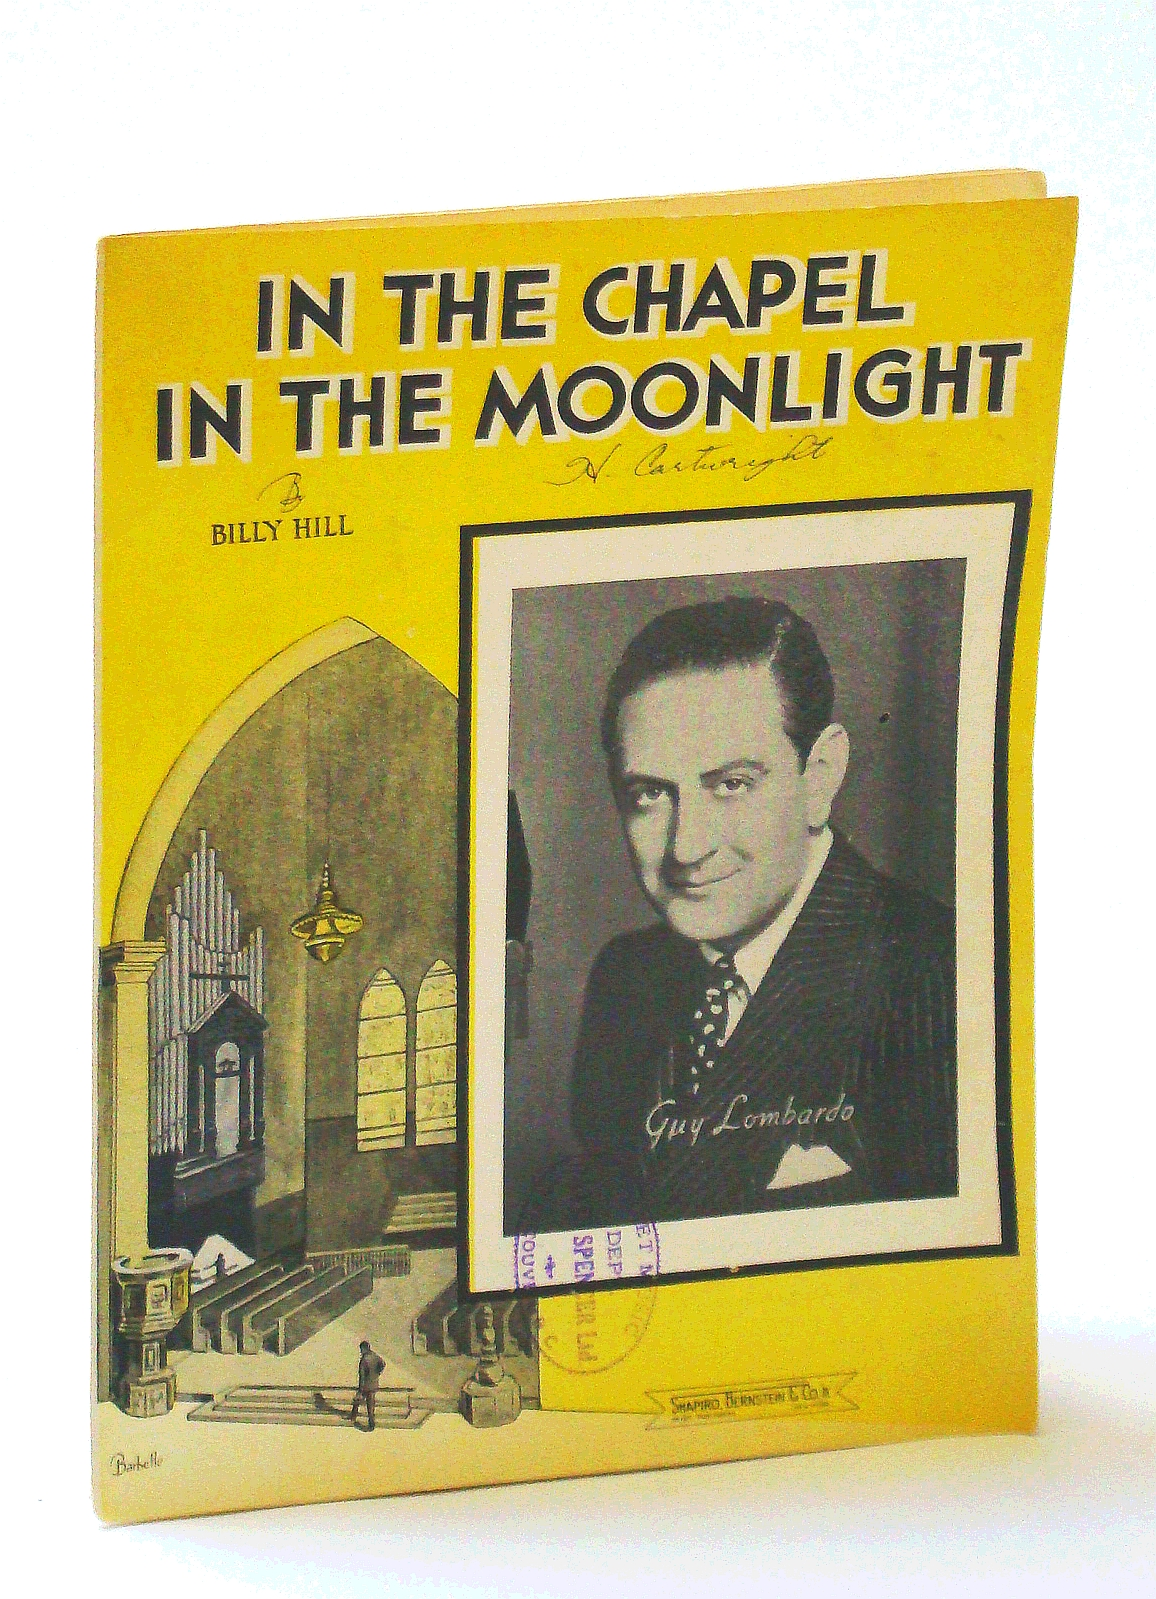 Image for IN THE CHAPEL IN THE MOONLIGHT (1936 Billy Hill SHEET MUSIC), Excellent condition, performe dby GUY LOMBARDO (pictured)